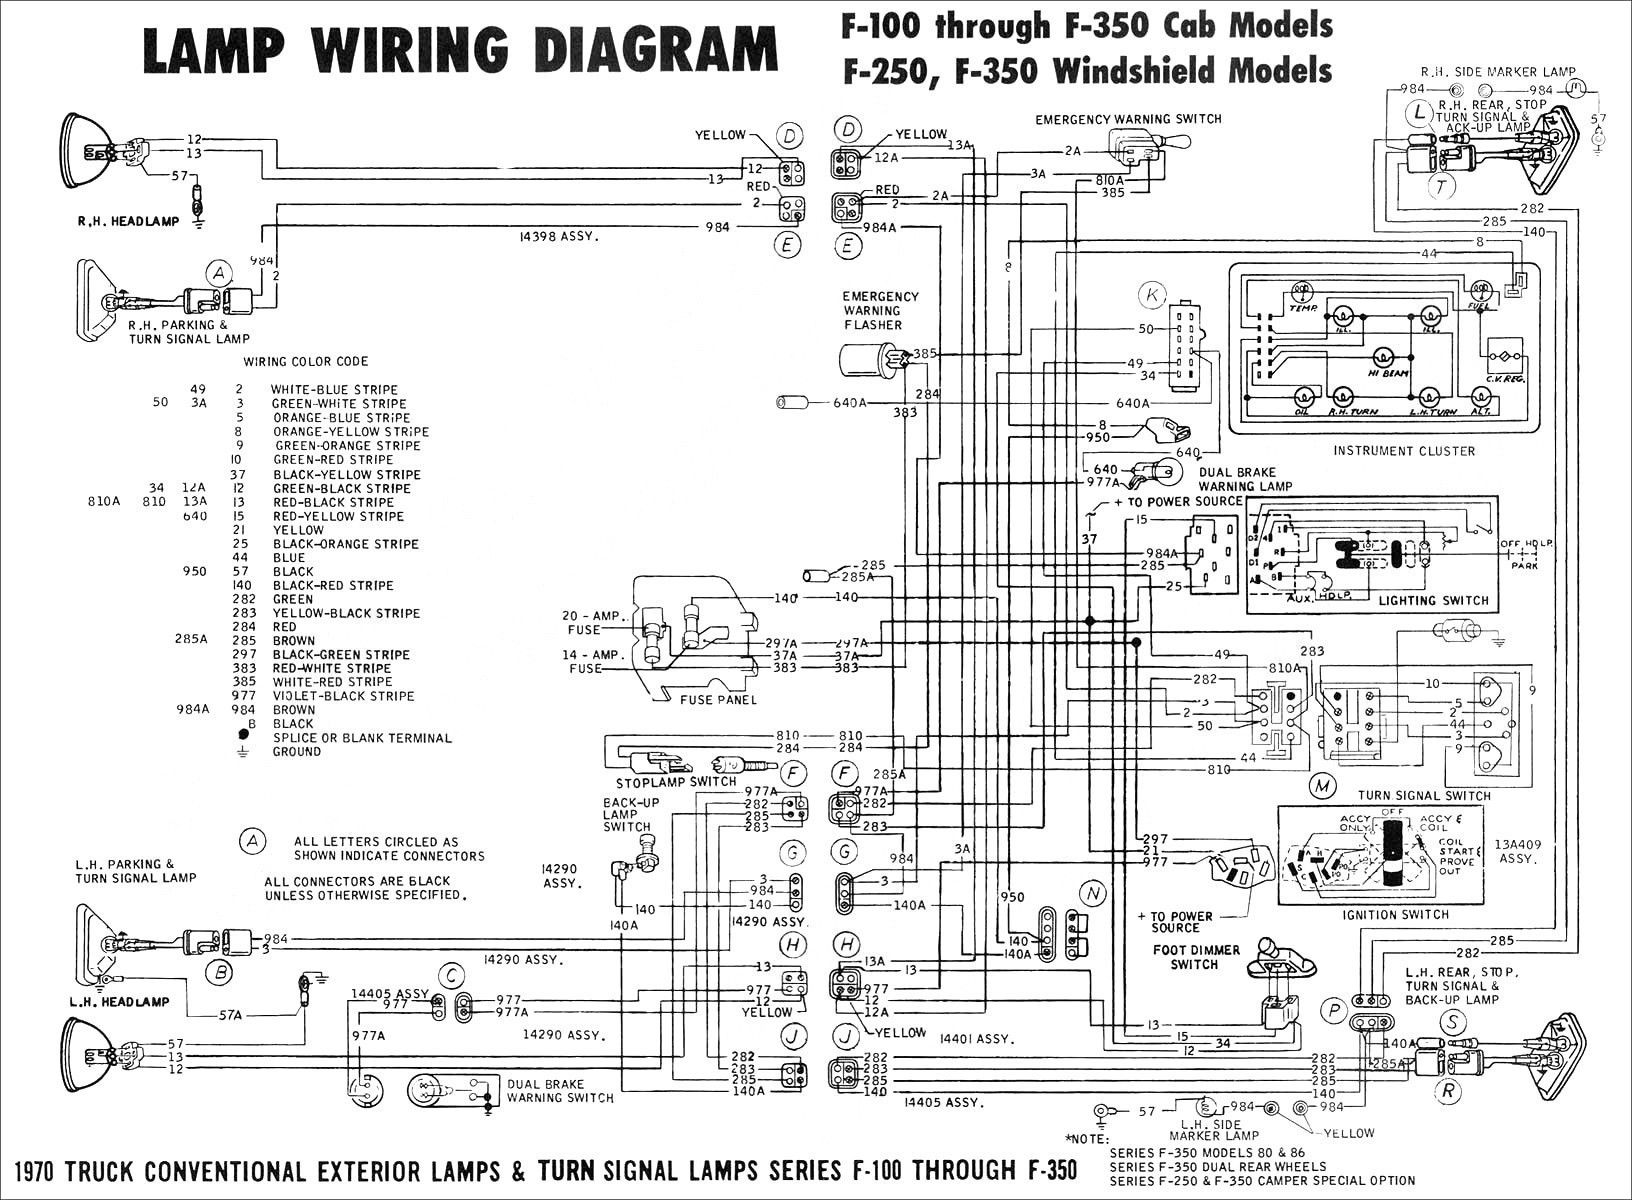 1998 Nissan Altima Engine Diagram 2000 Audi A4 Radio Wiring Diagram Valid 1999 Nissan Altima Radio Of 1998 Nissan Altima Engine Diagram